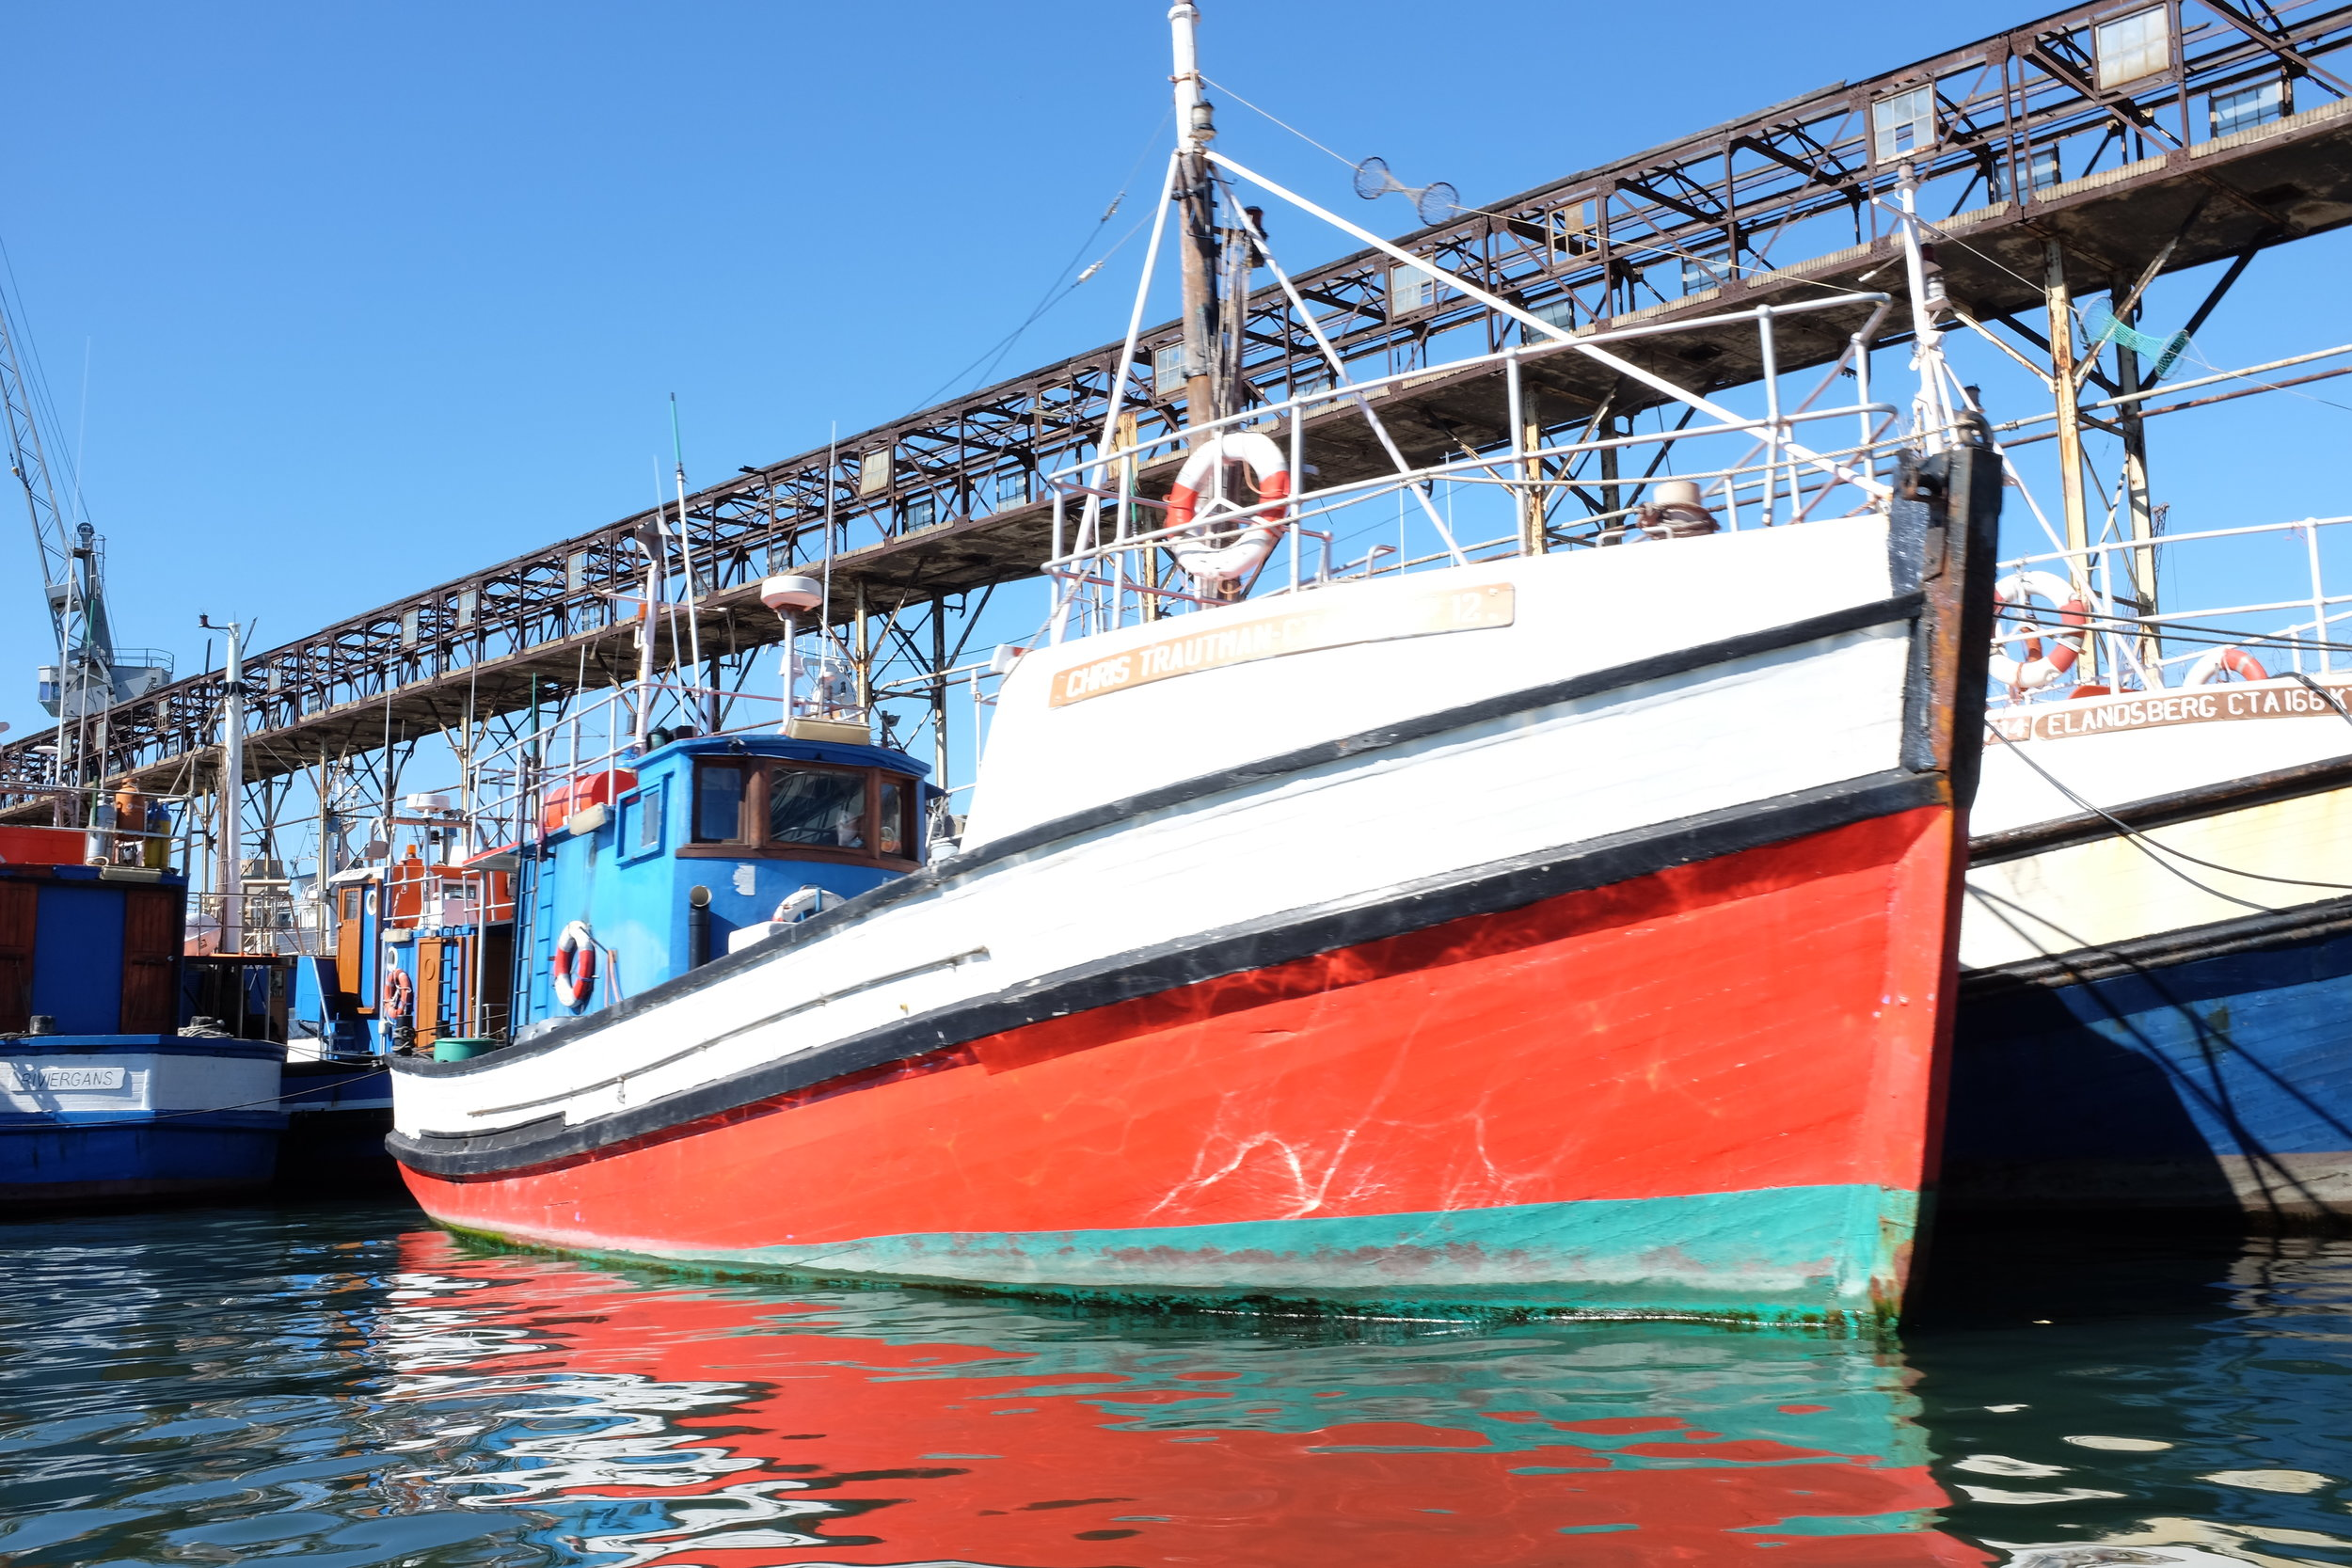 A boat at the Victoria & Alfred Waterfront in Cape Town.